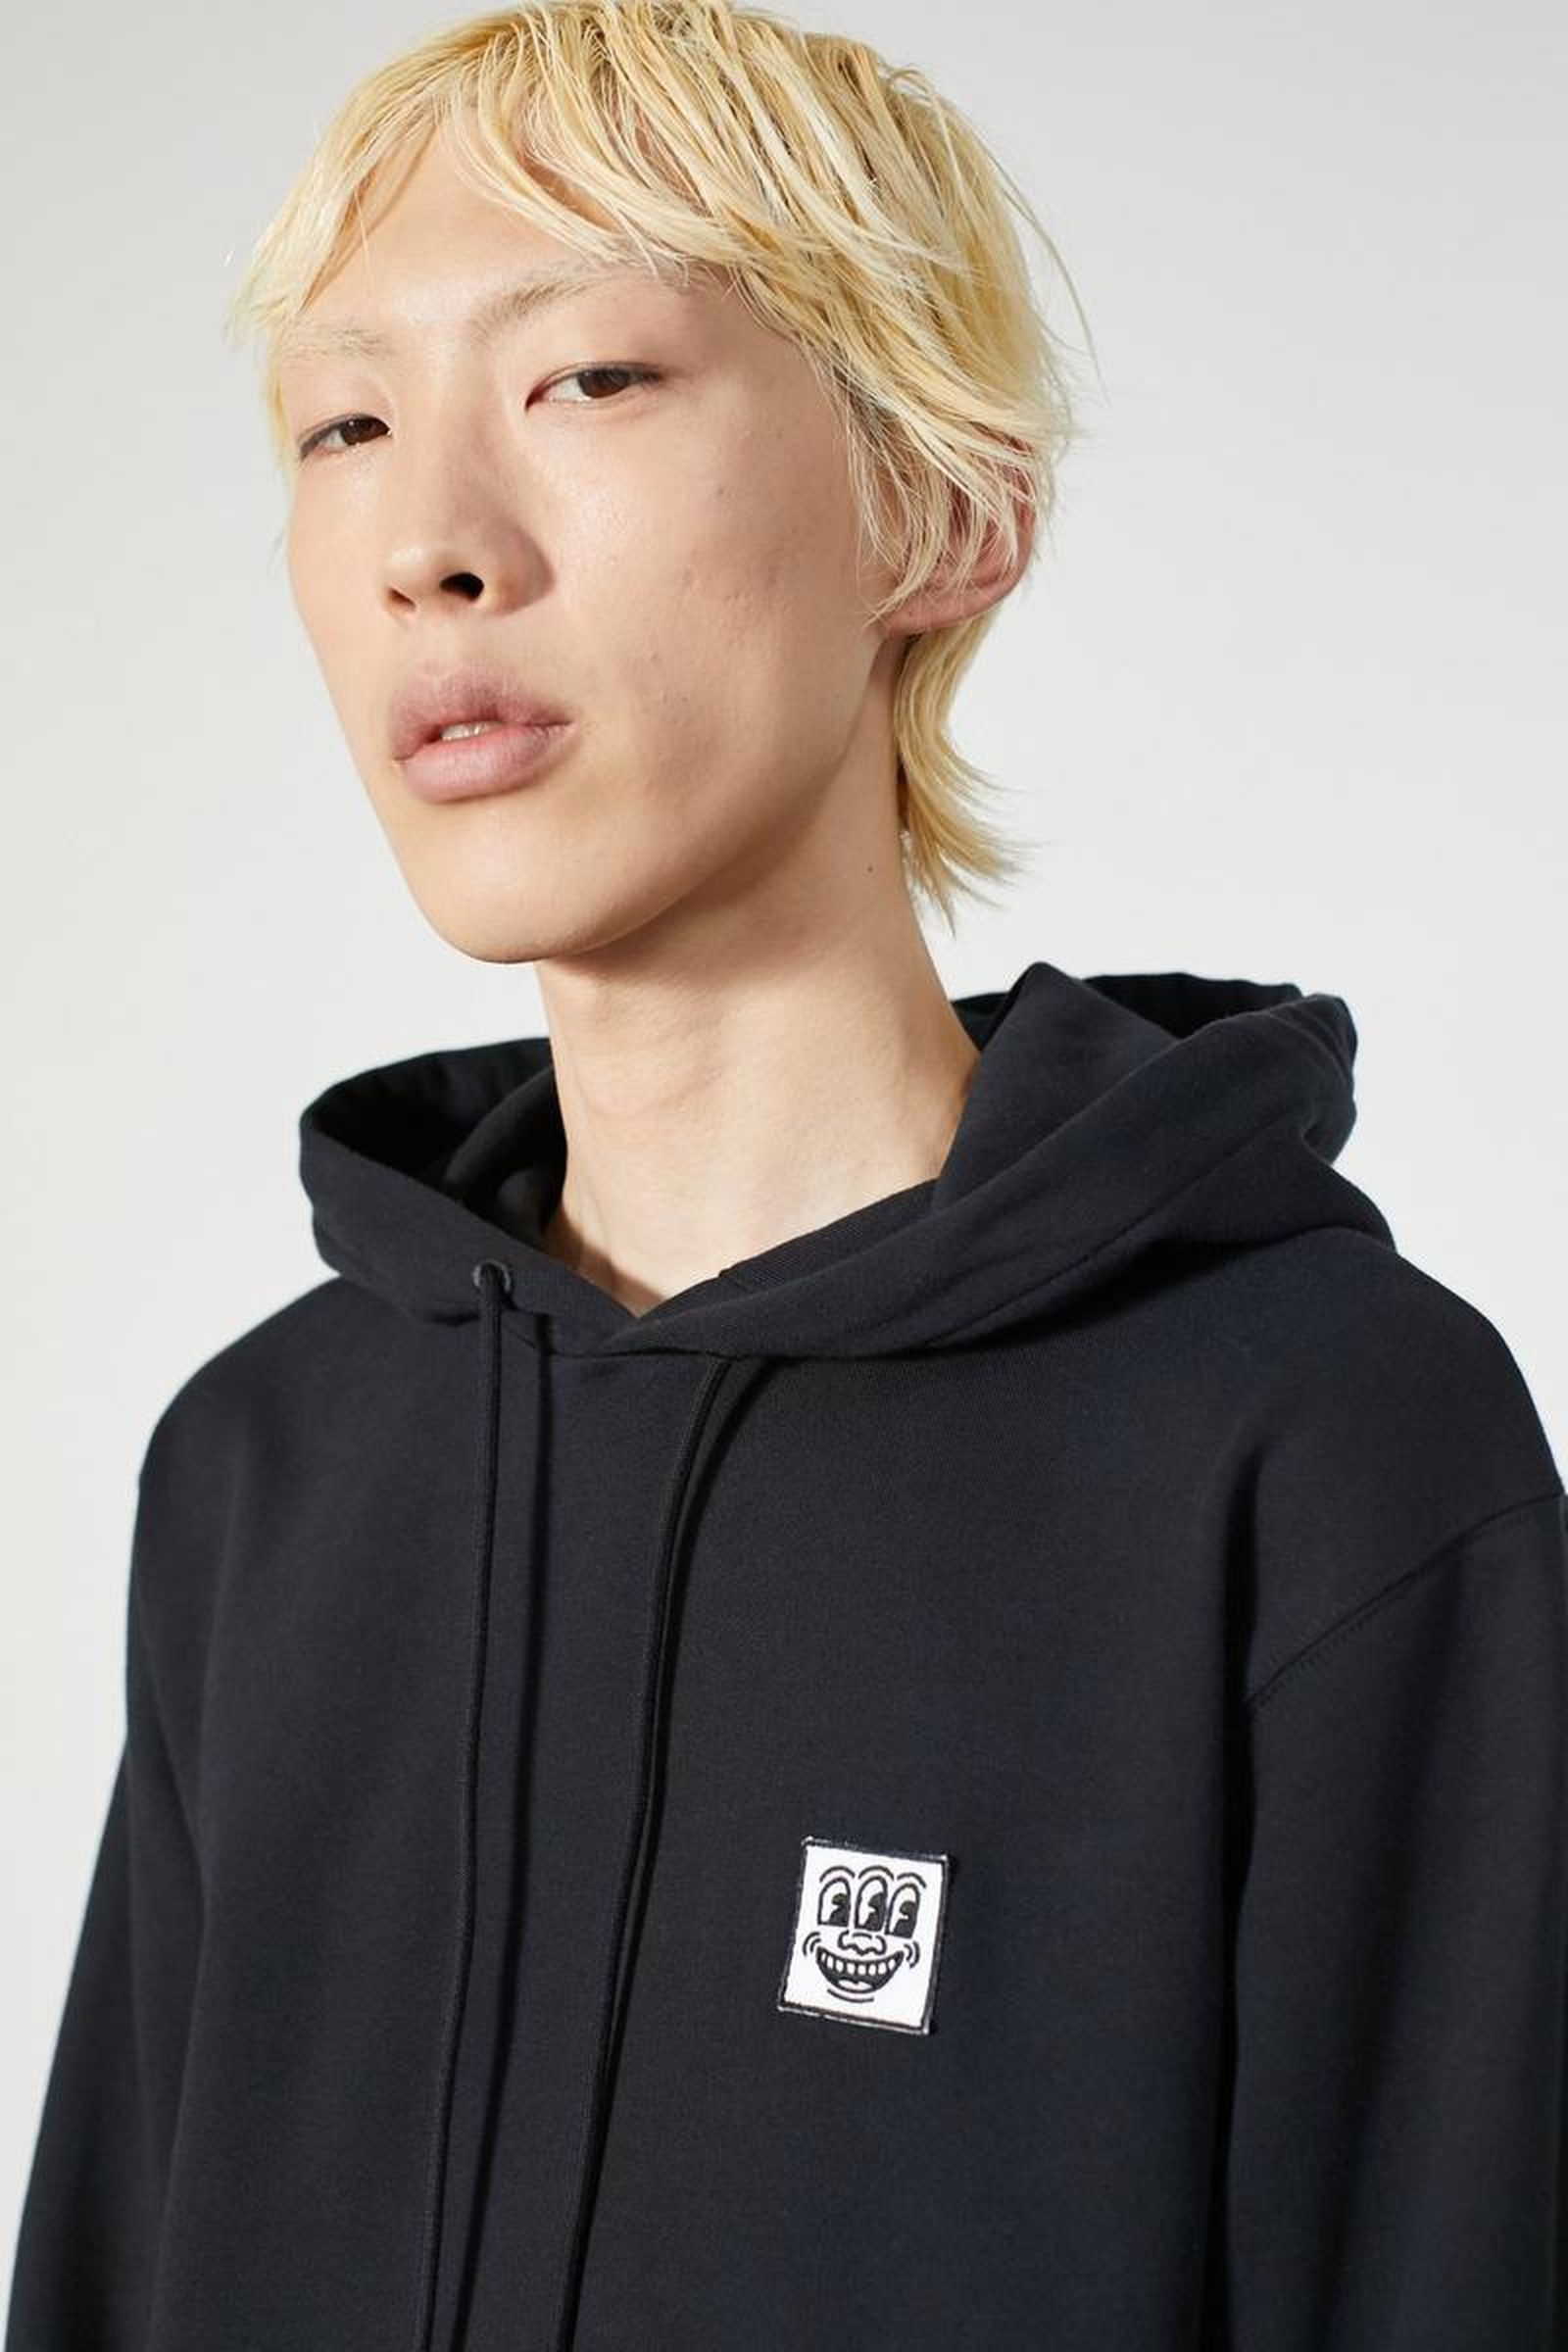 8etudes-keith-haring-ss20-collection